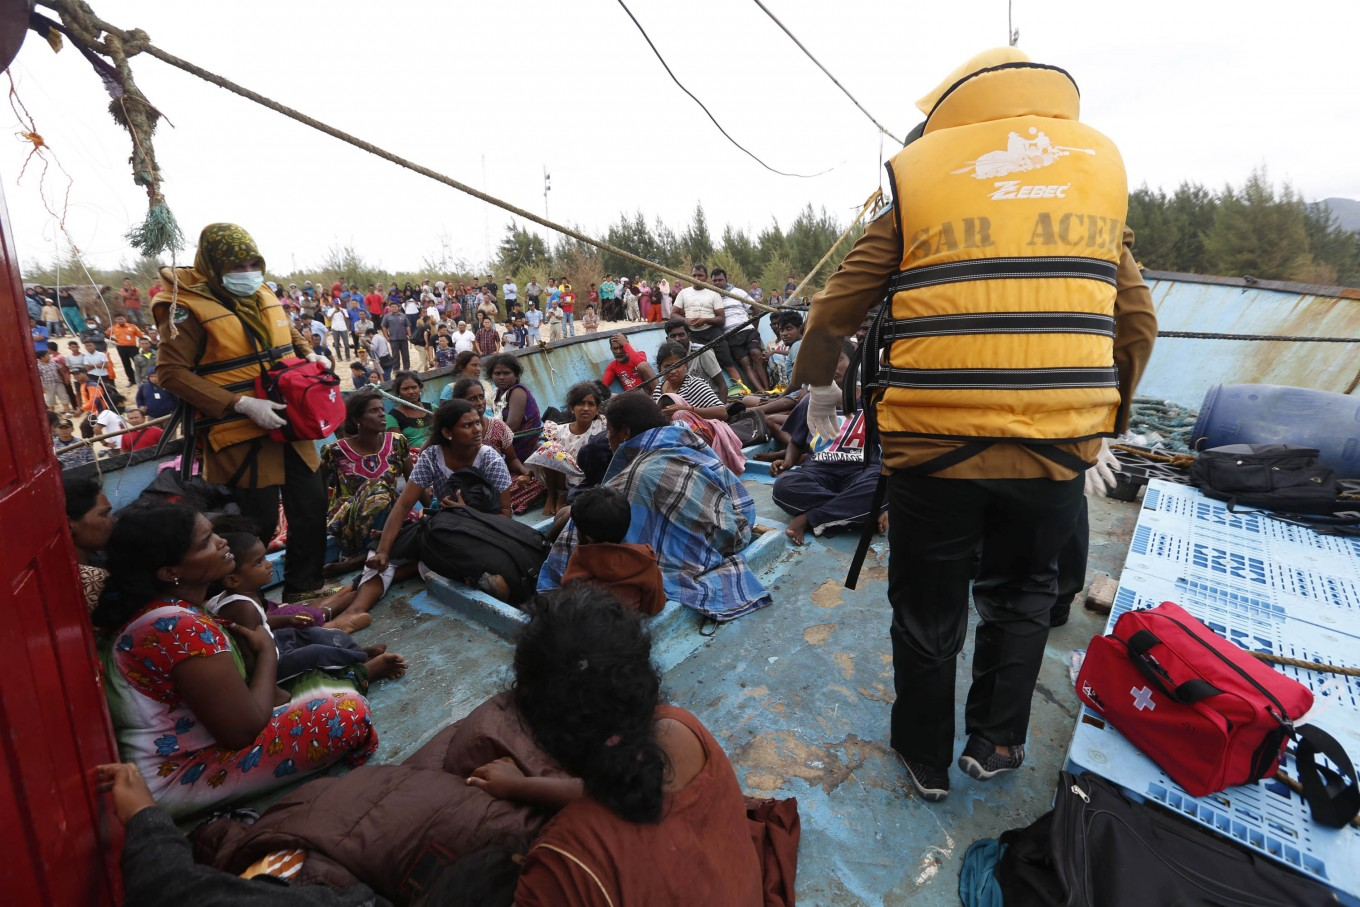 'We are tired of waiting': Asylum seekers in Medan demand immediate resettlement